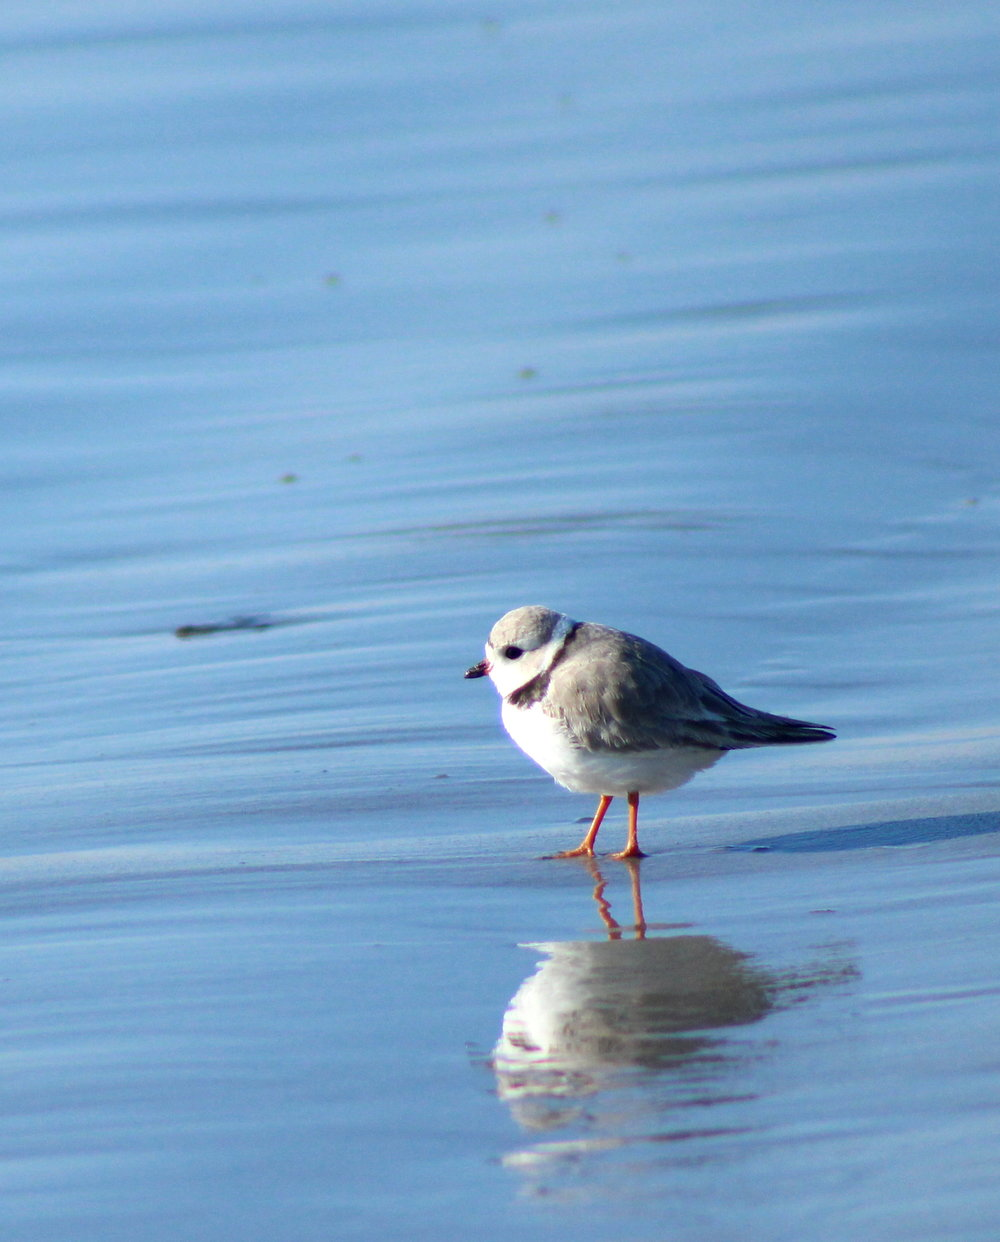 PIPING PLOVER__PIPL.JPG